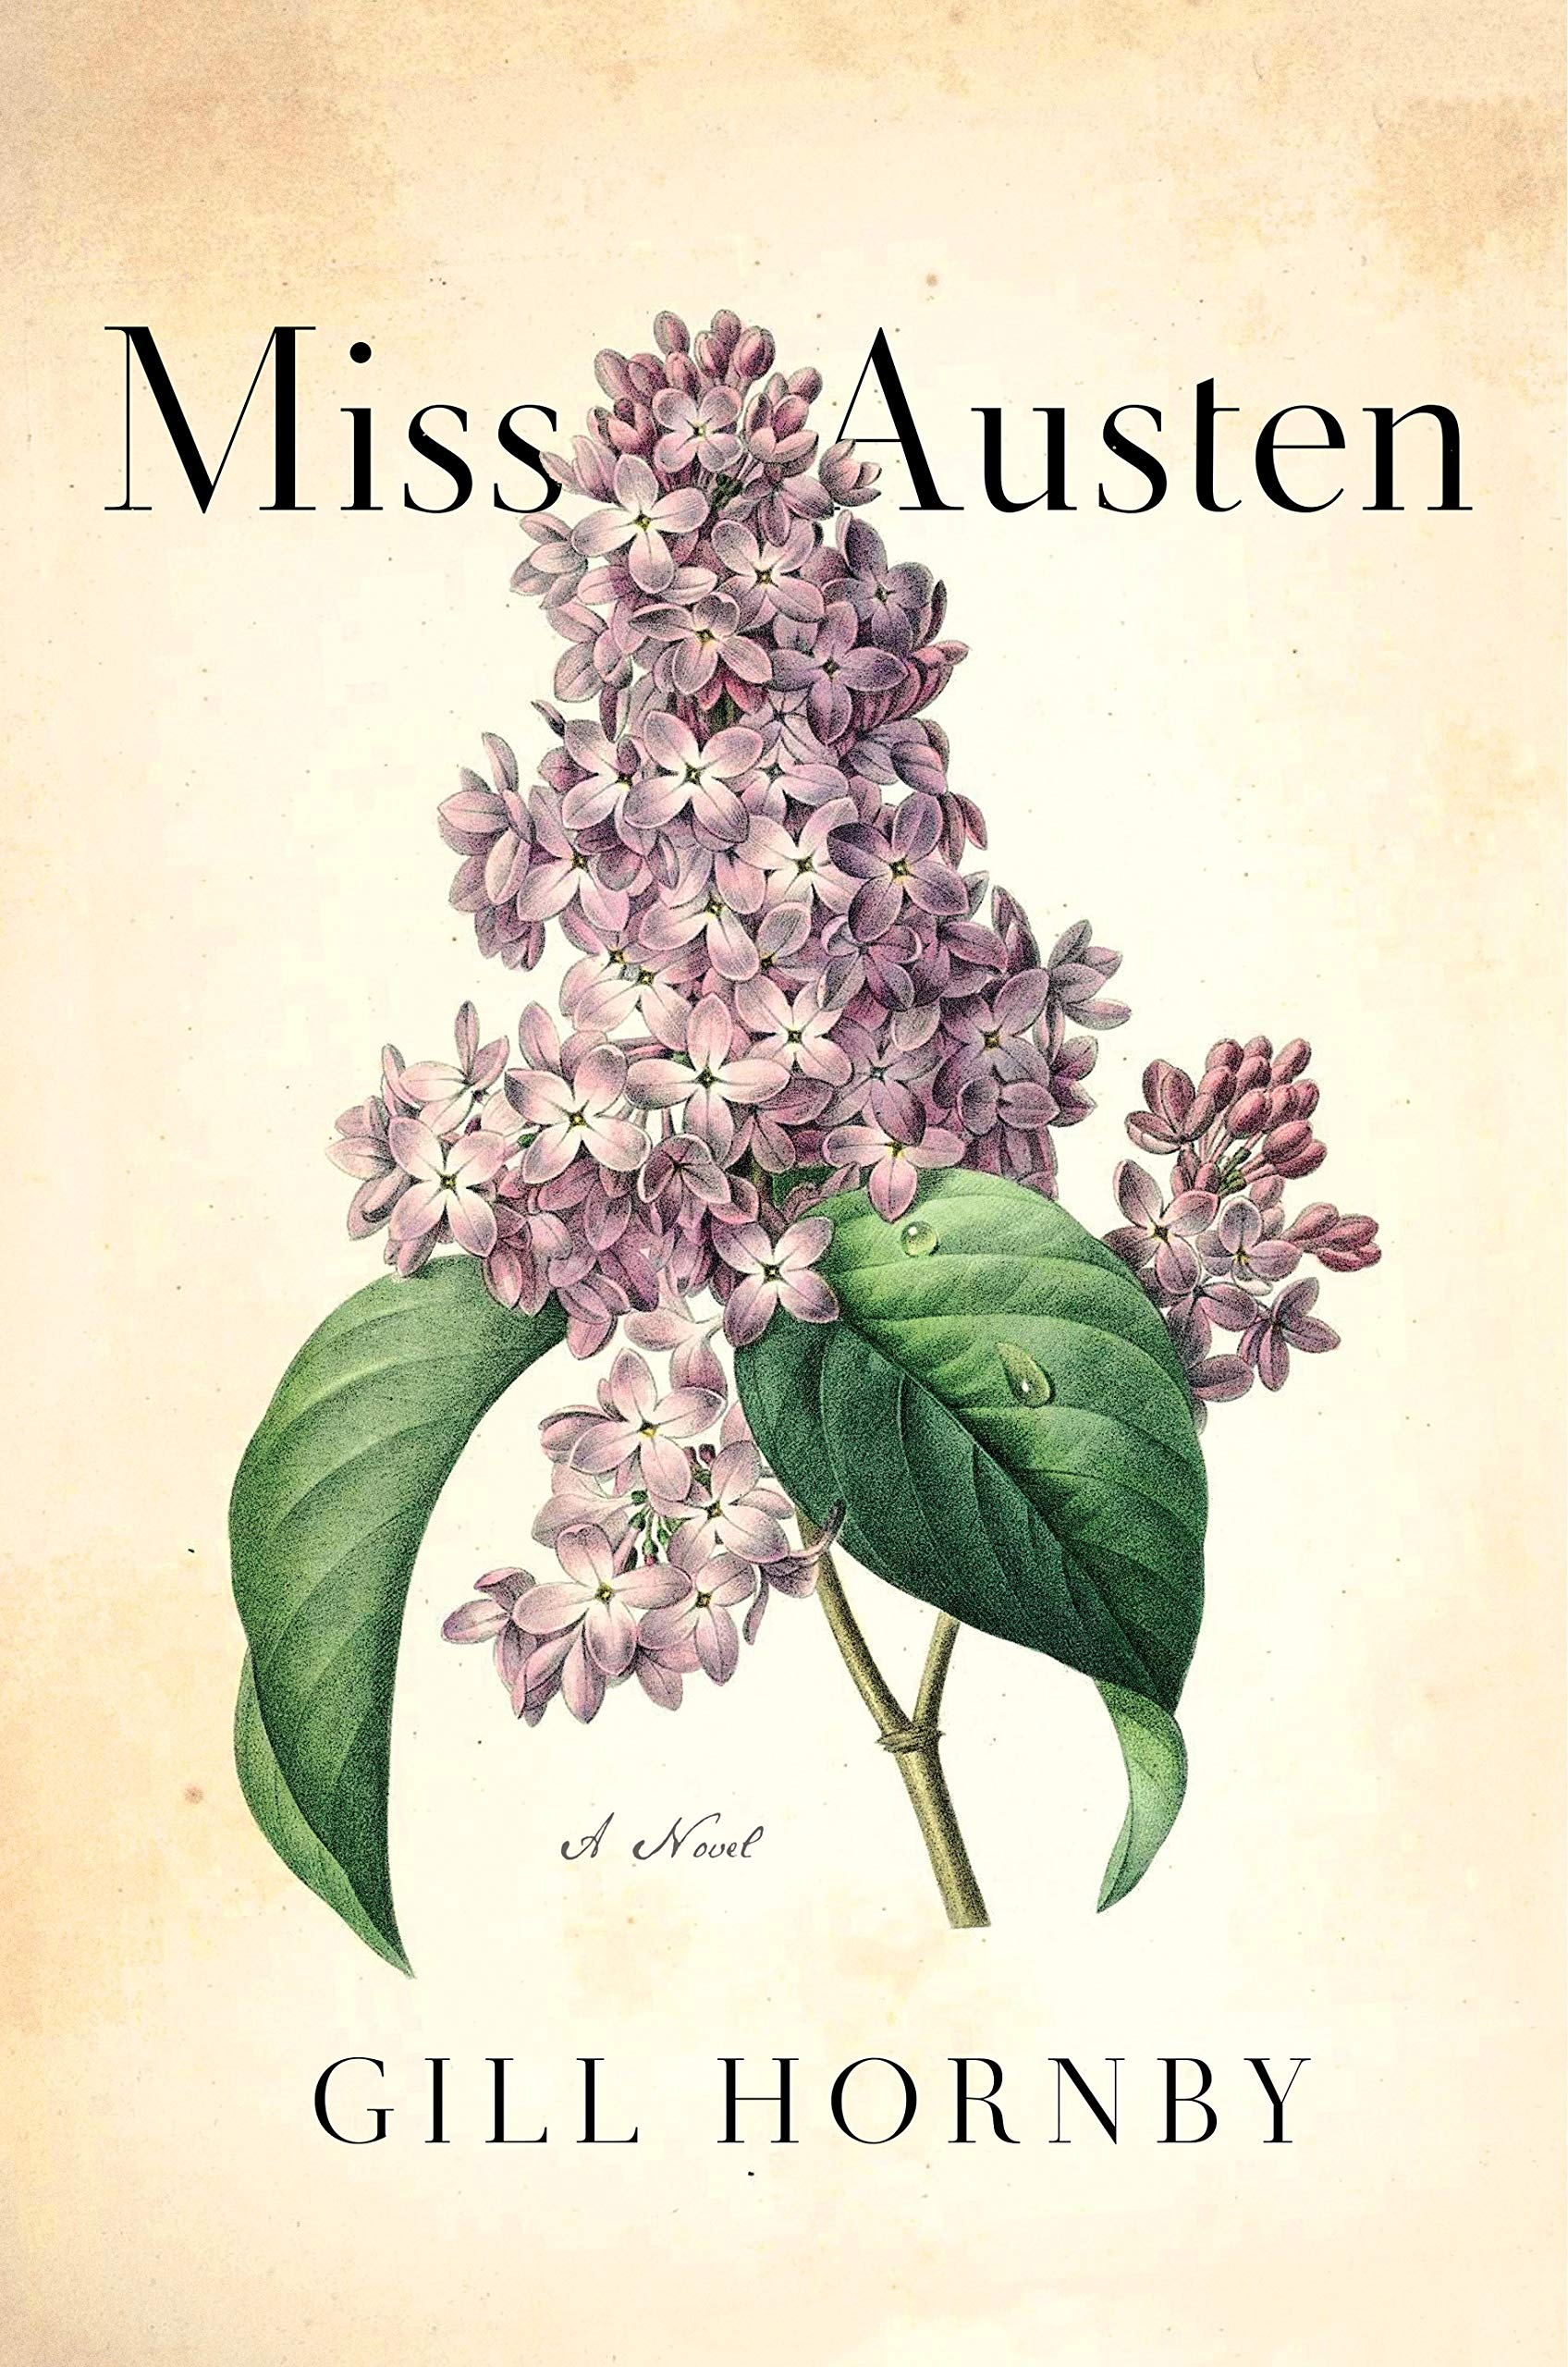 Miss Austen, by Gill Hornby (2020)